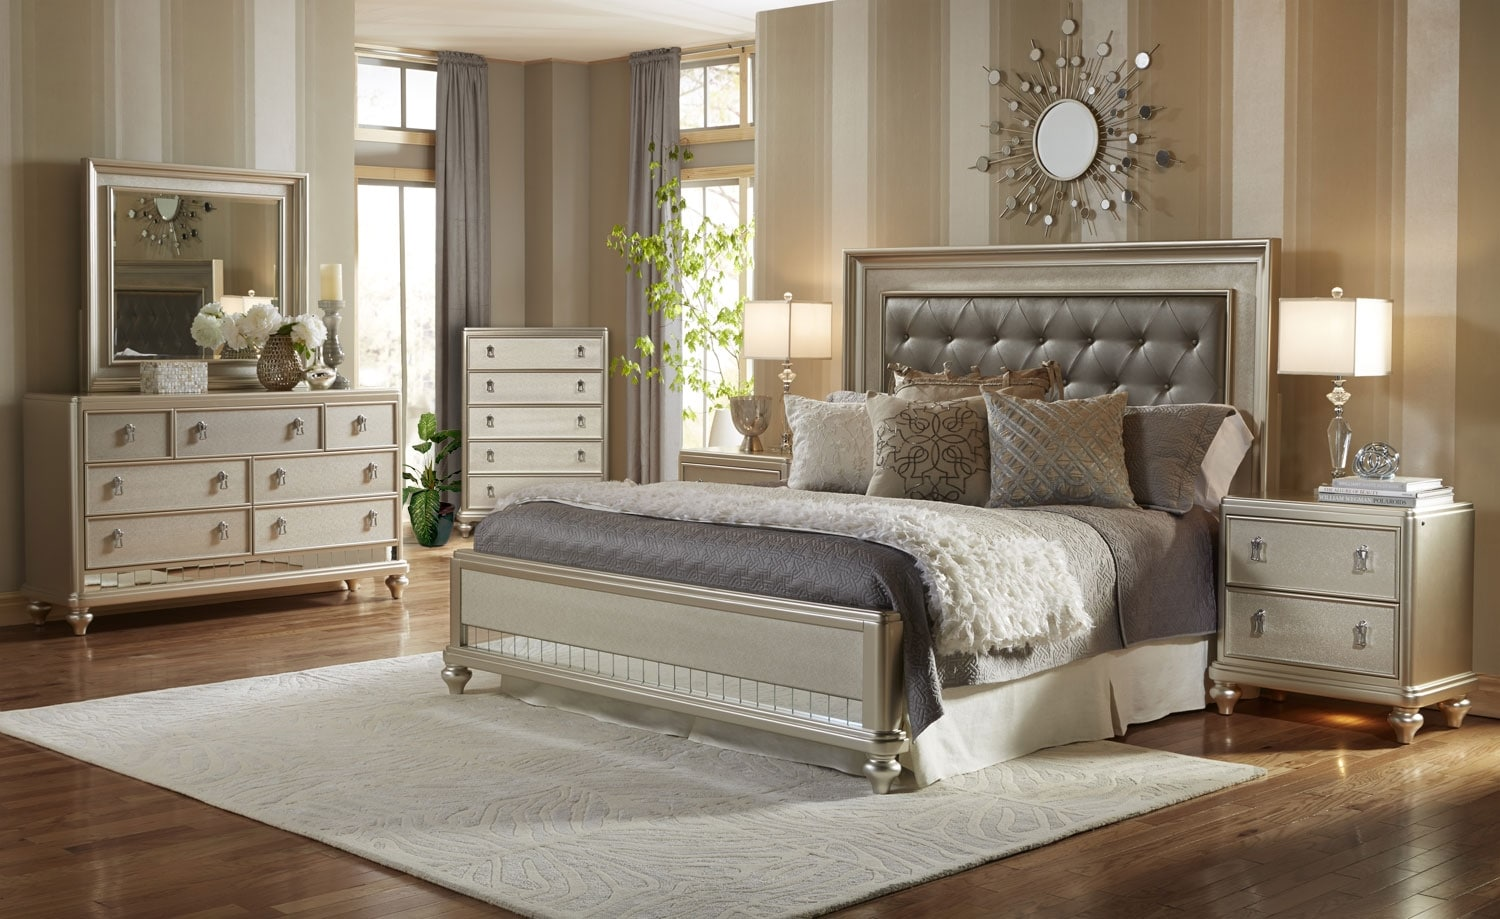 Diva 8-Piece Queen Bedroom Package